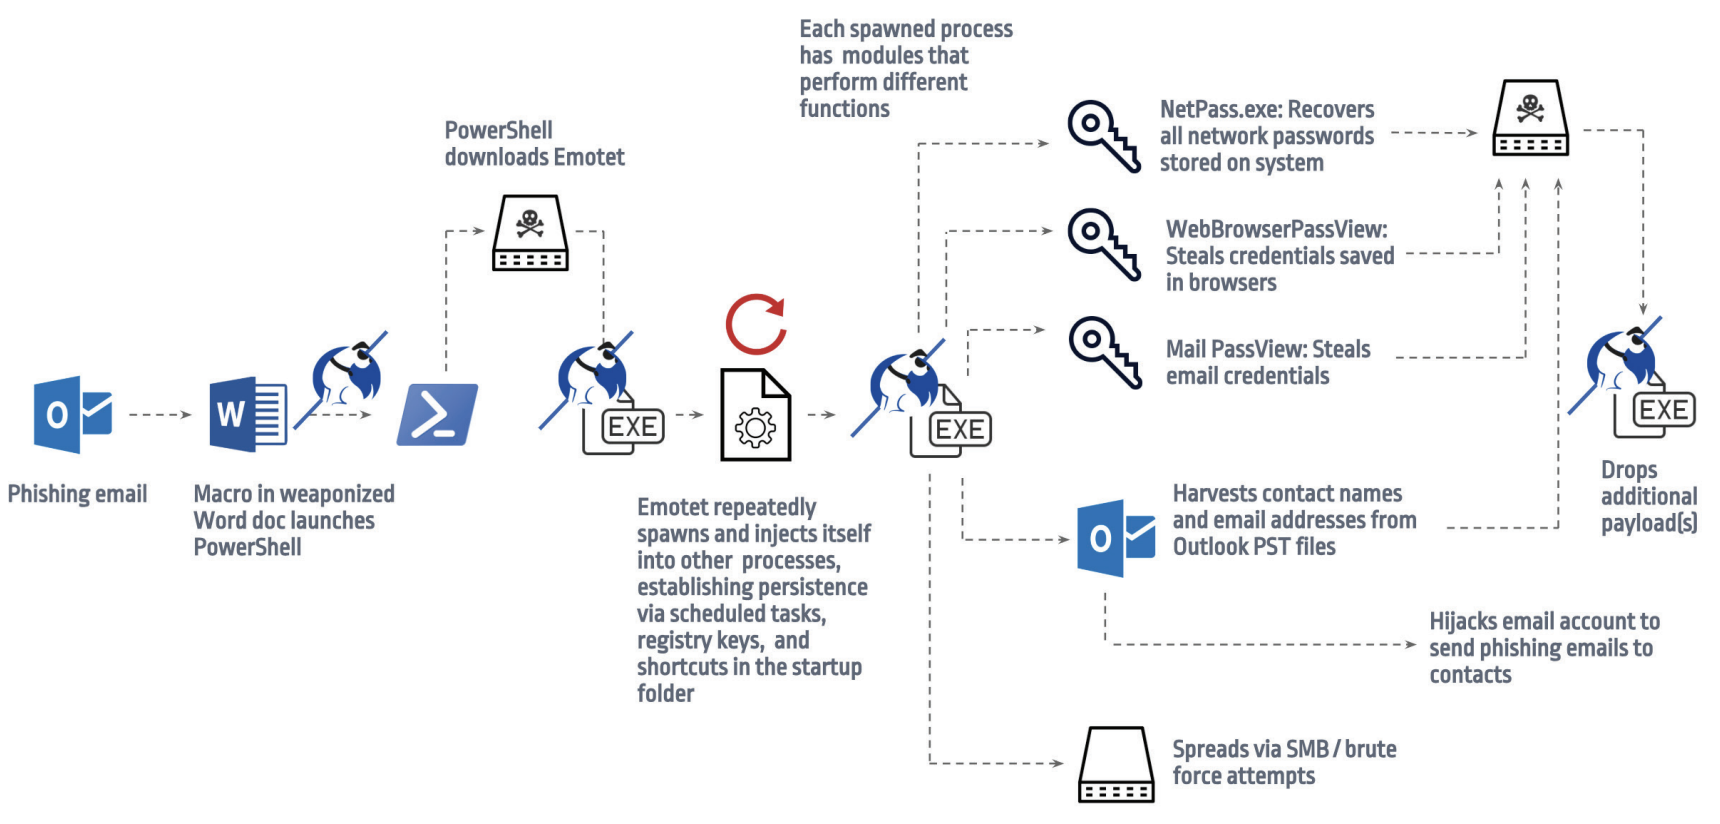 Emotet Email Attack Diagram - Spambrella